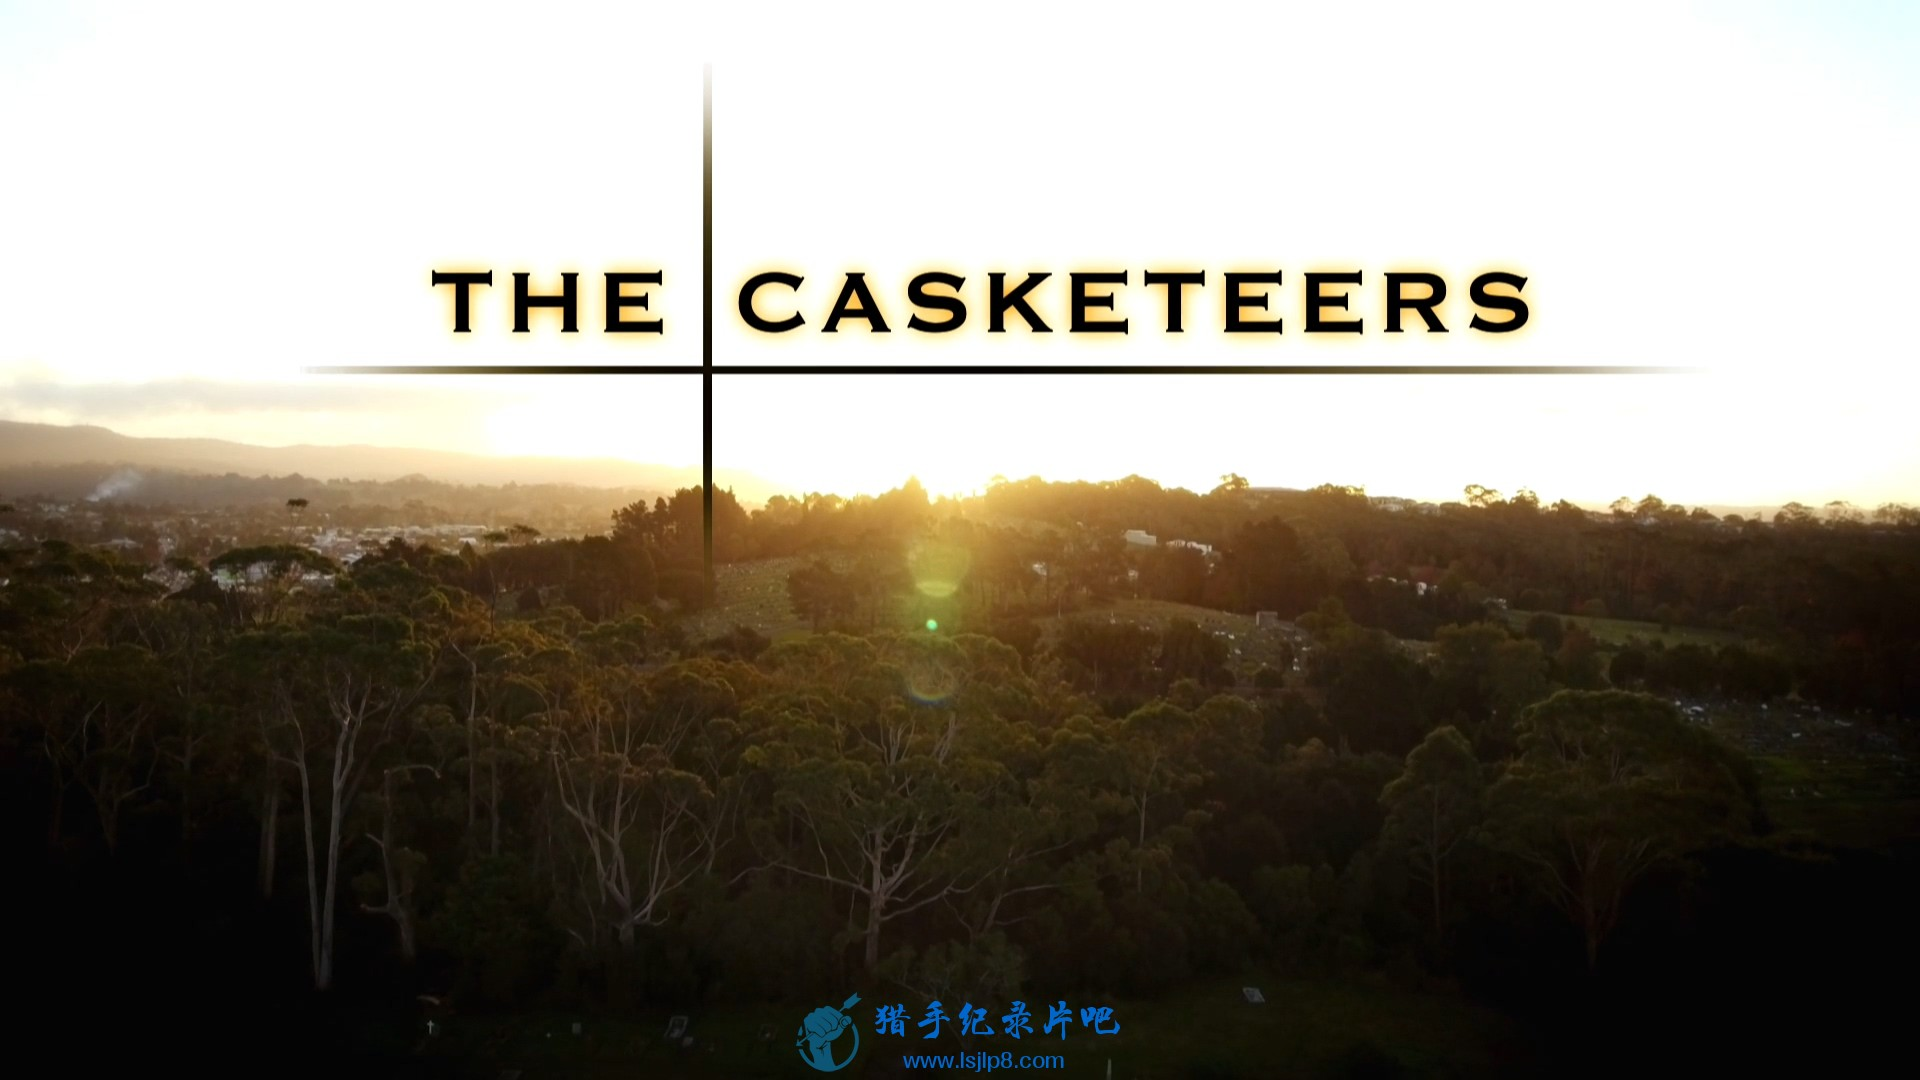 The.Casketeers.S01E01.1080p.NF.WEB-DL.DDP2.0.x264-NTb.mkv_20200229_160147.713.jpg